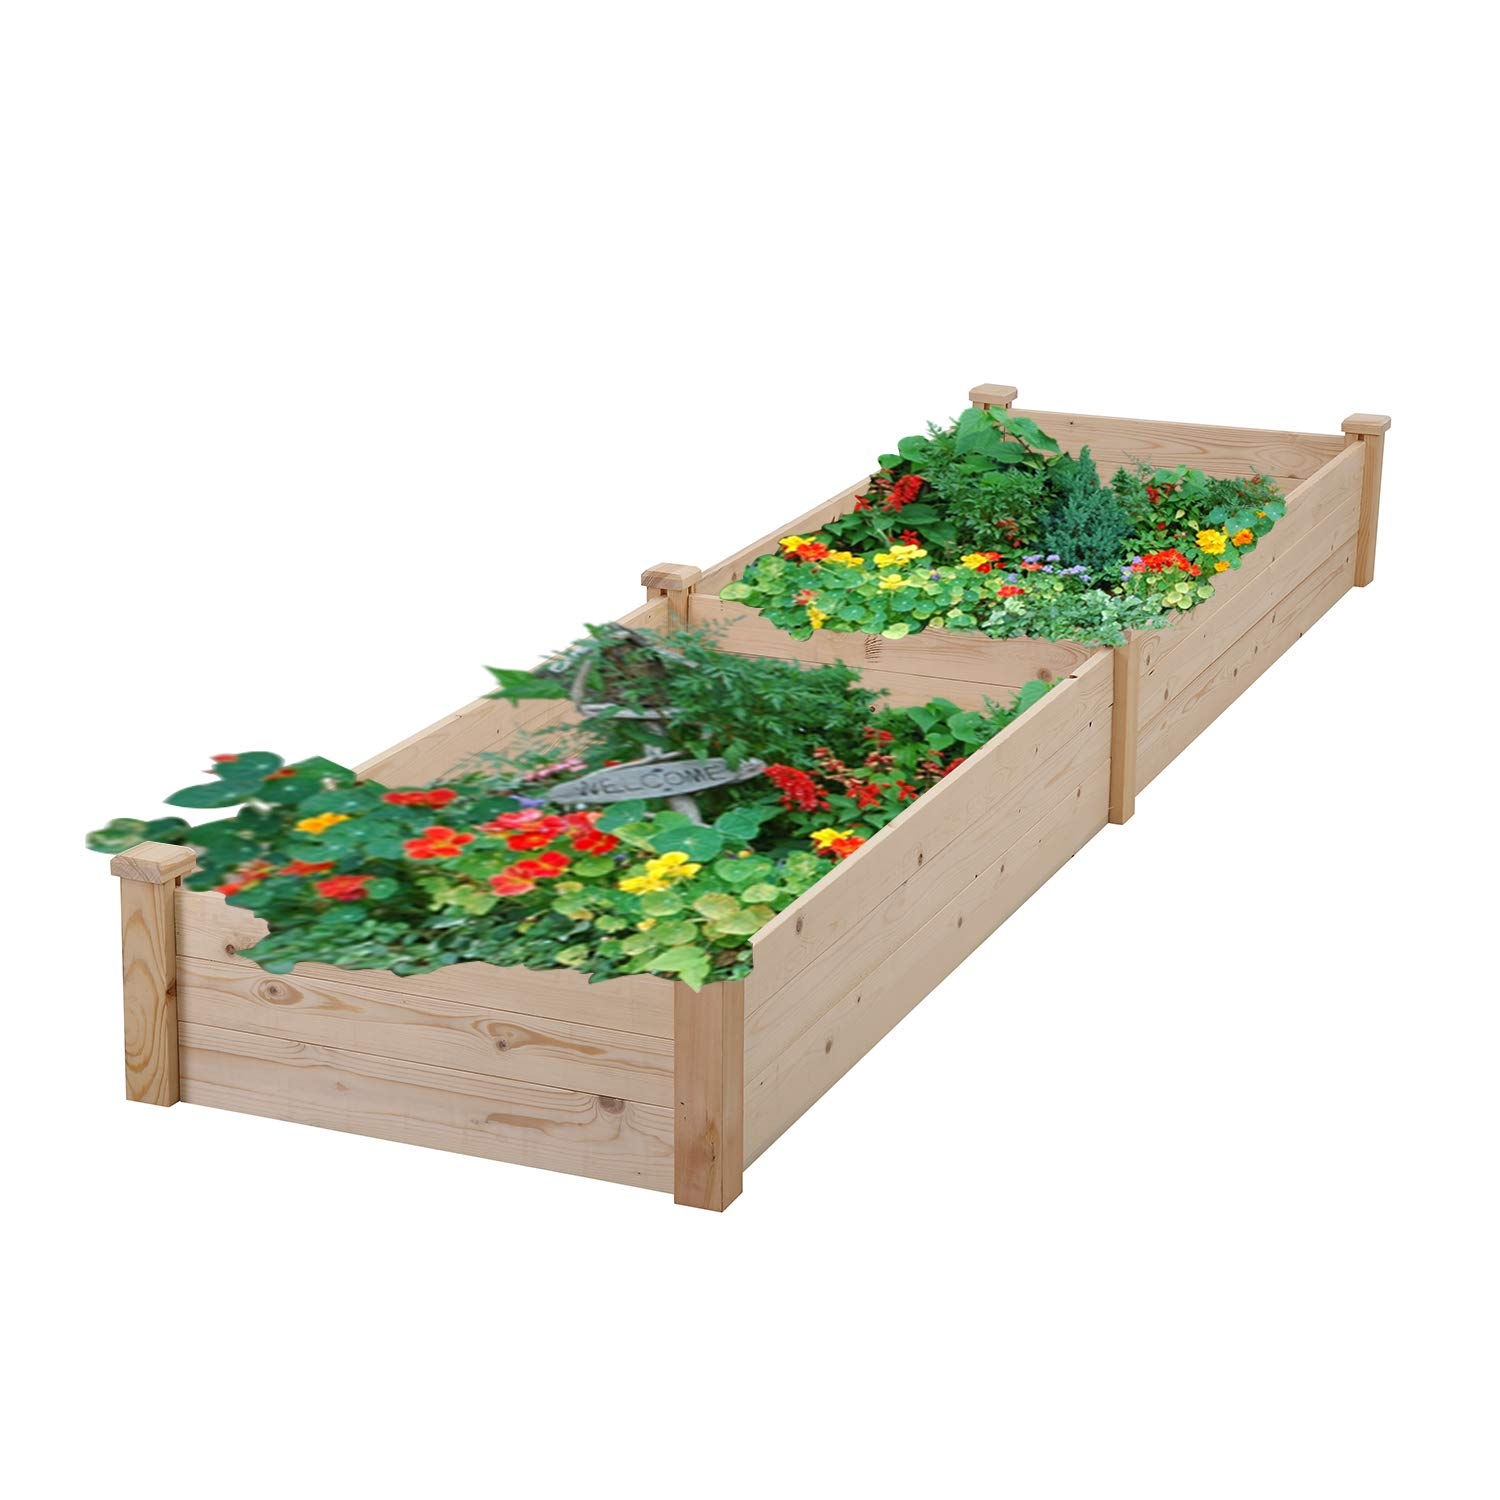 Outdoor Basic Planter Raised Beds Backyard Elevated Garden Bed Growing Vegetables Flowers Size 8ft x 2ft x 0.83ft